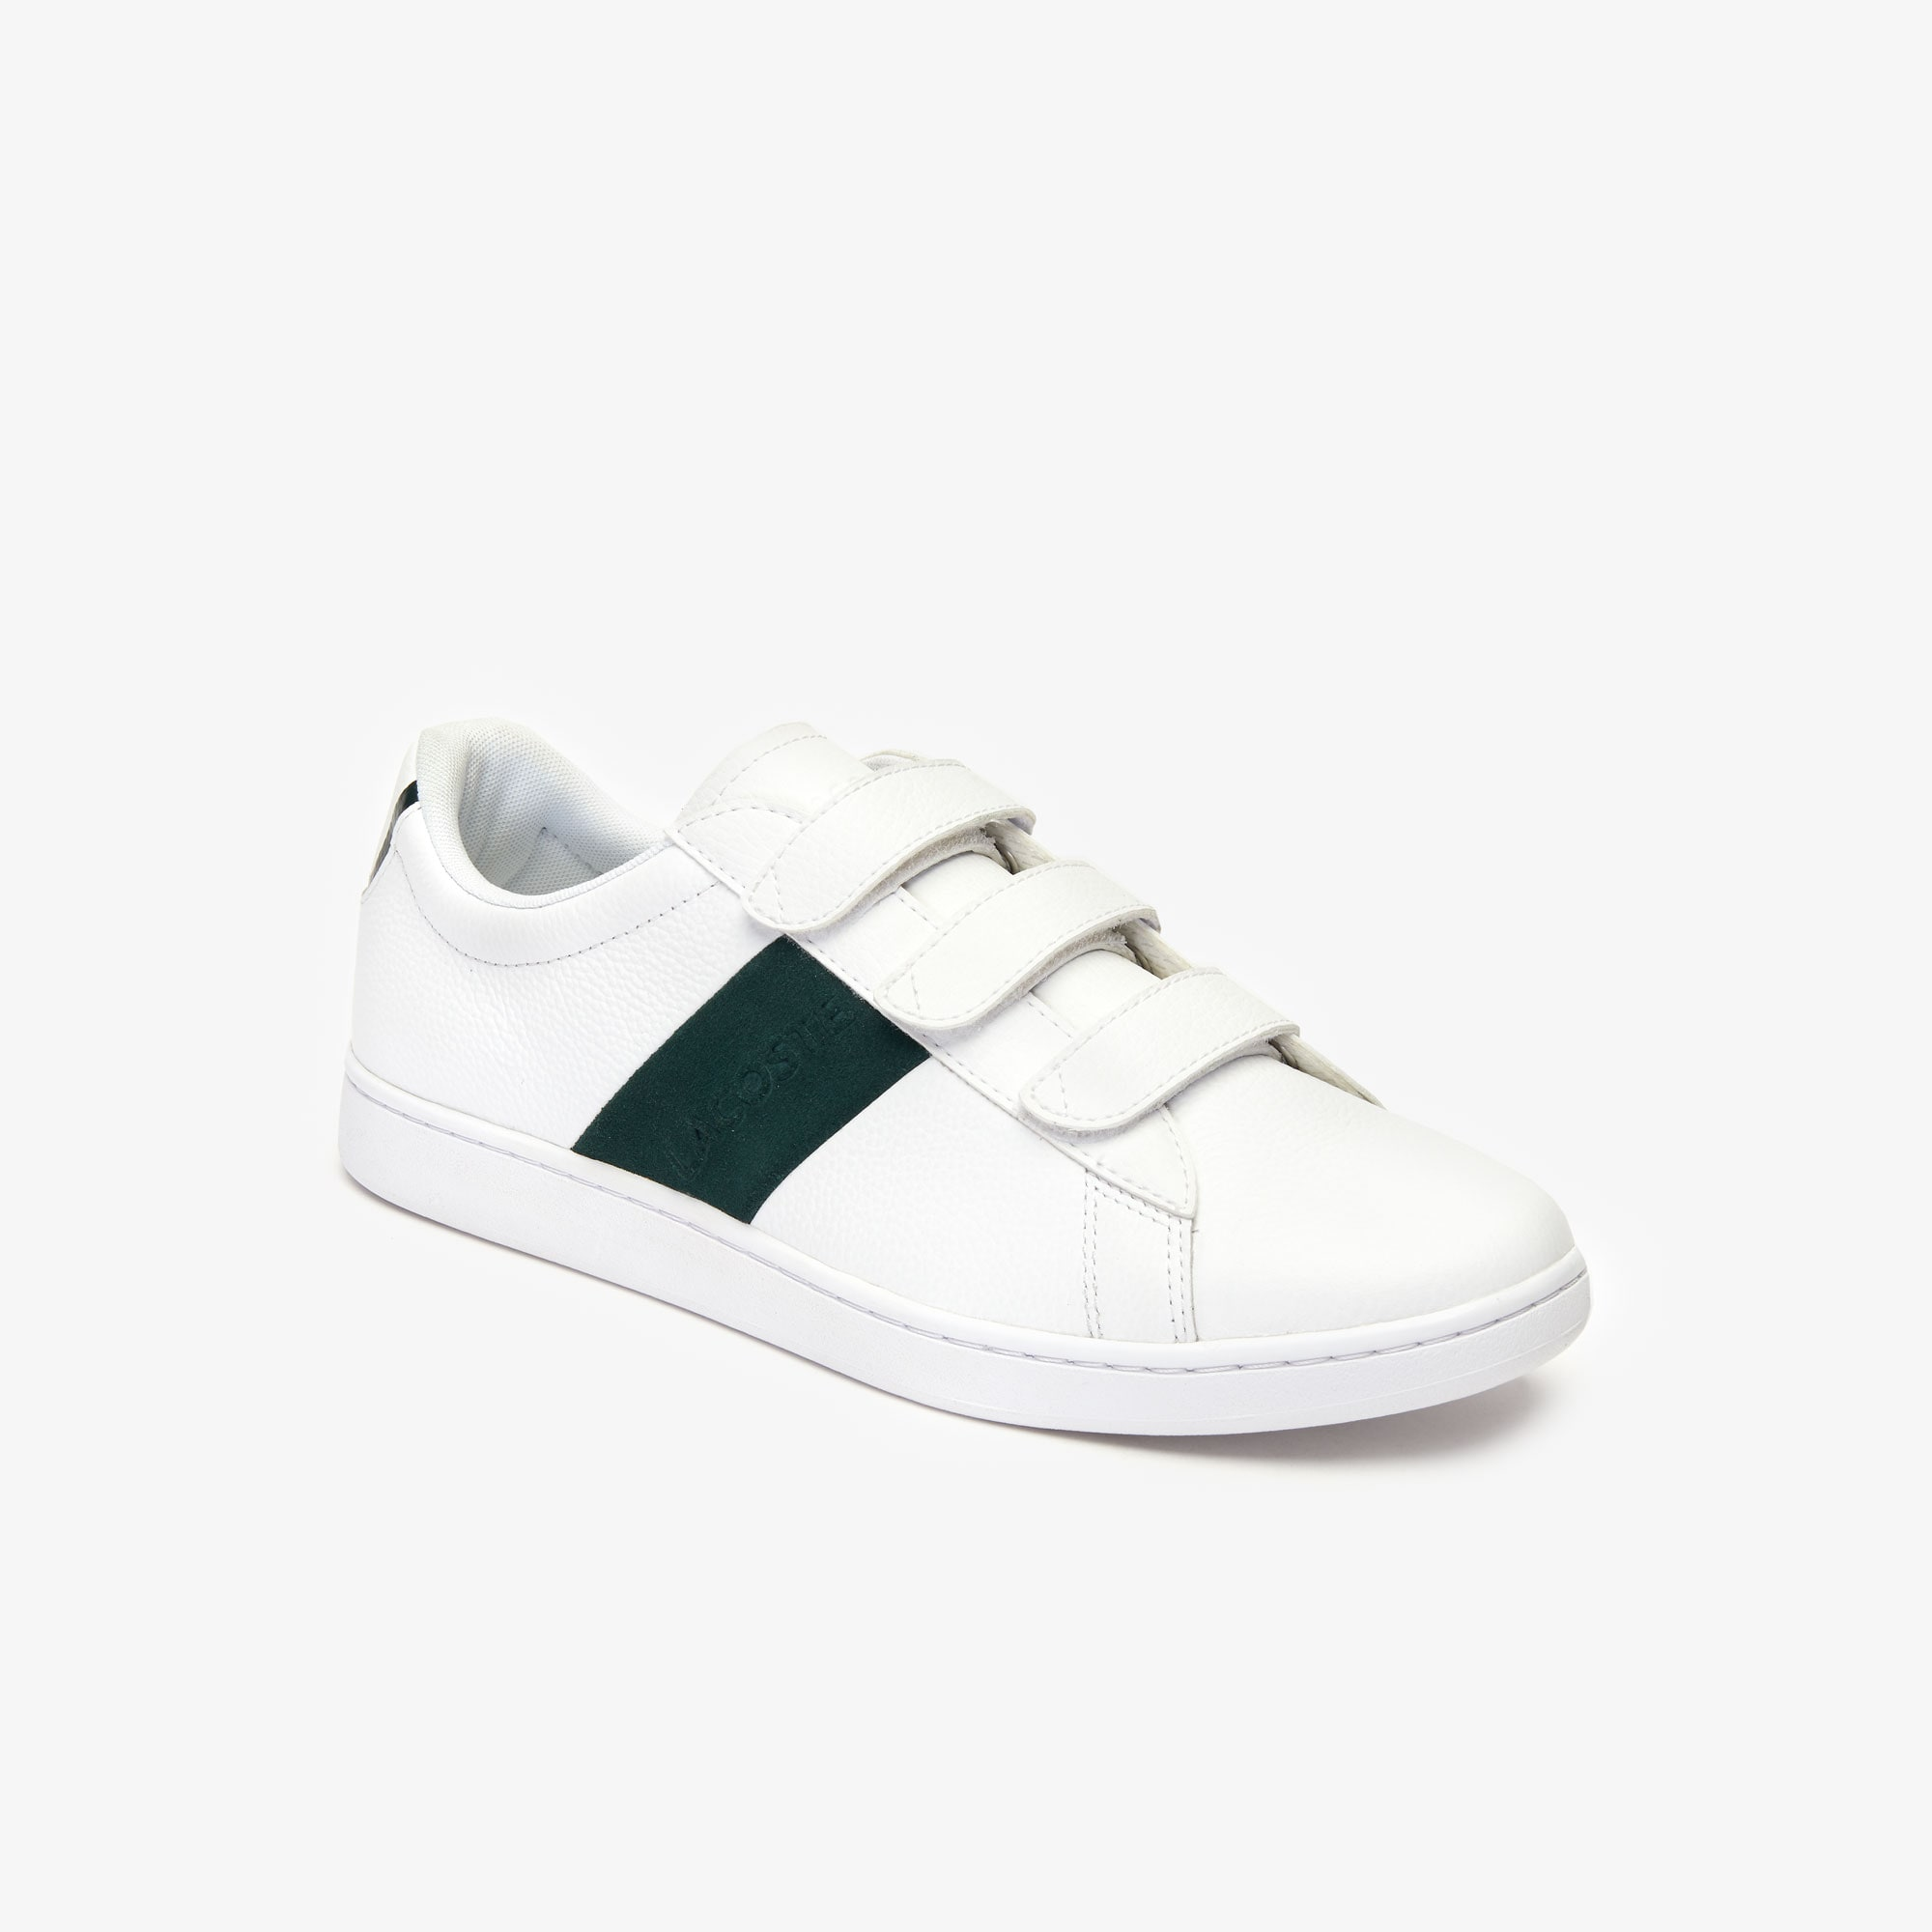 size 40 308d5 2885e Lacoste shoes for men: Sneakers, Trainers, Boots | LACOSTE